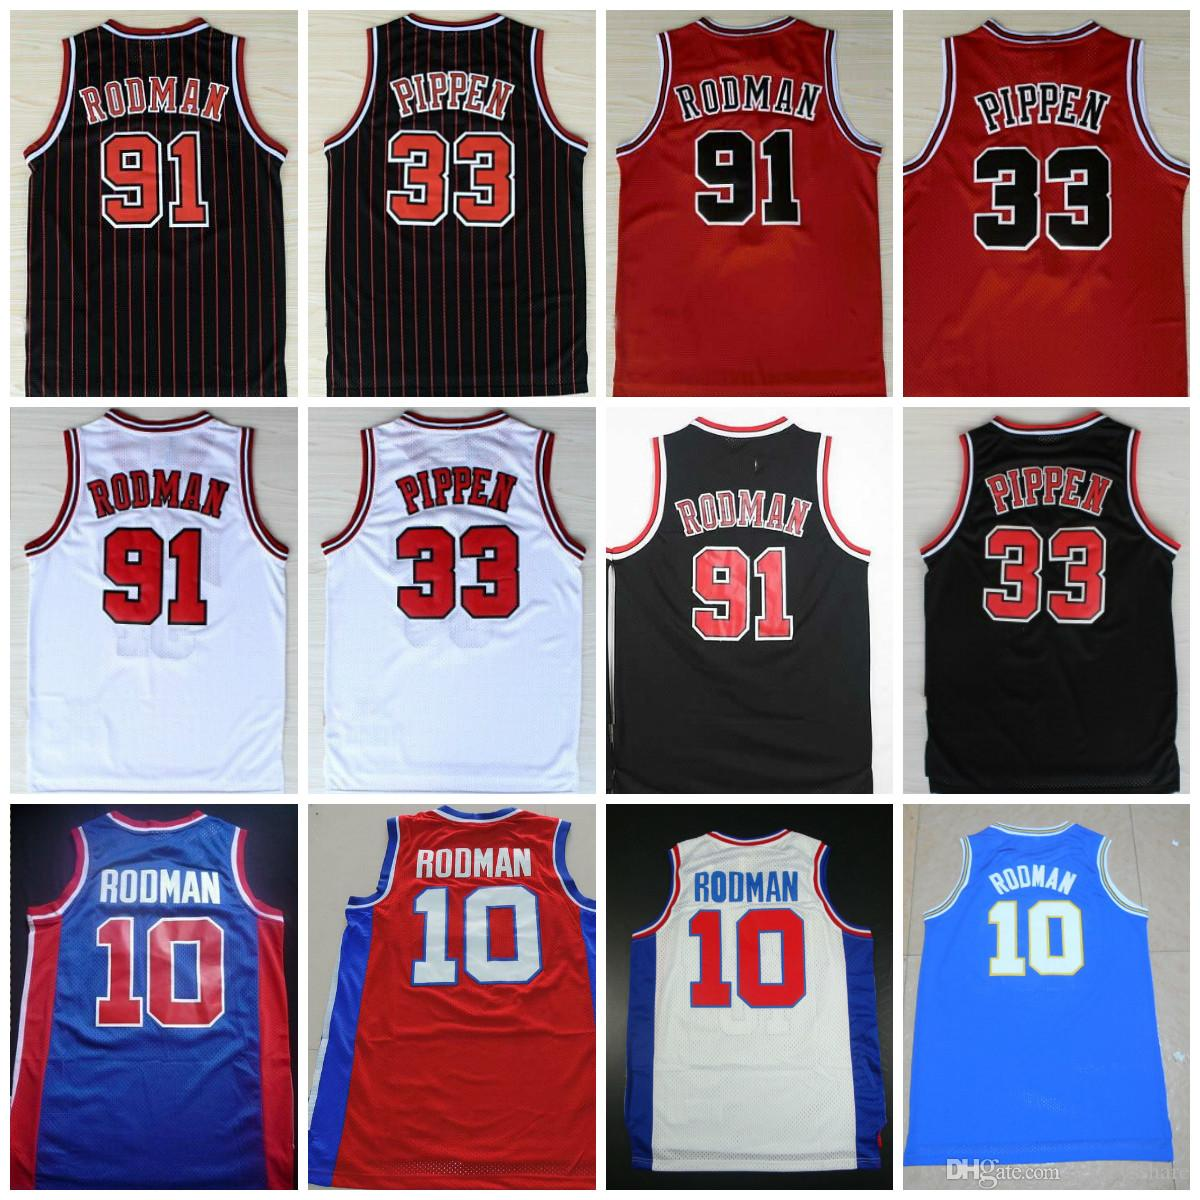 finest selection 86bc2 fac02 Oklahoma Savages #91 Dennis Rodman Jersey #33 Scottie Pippen Jerseys The  Worm 10 Dennis Rodman Mens Stitched Red White Black Shirts S-XXXL